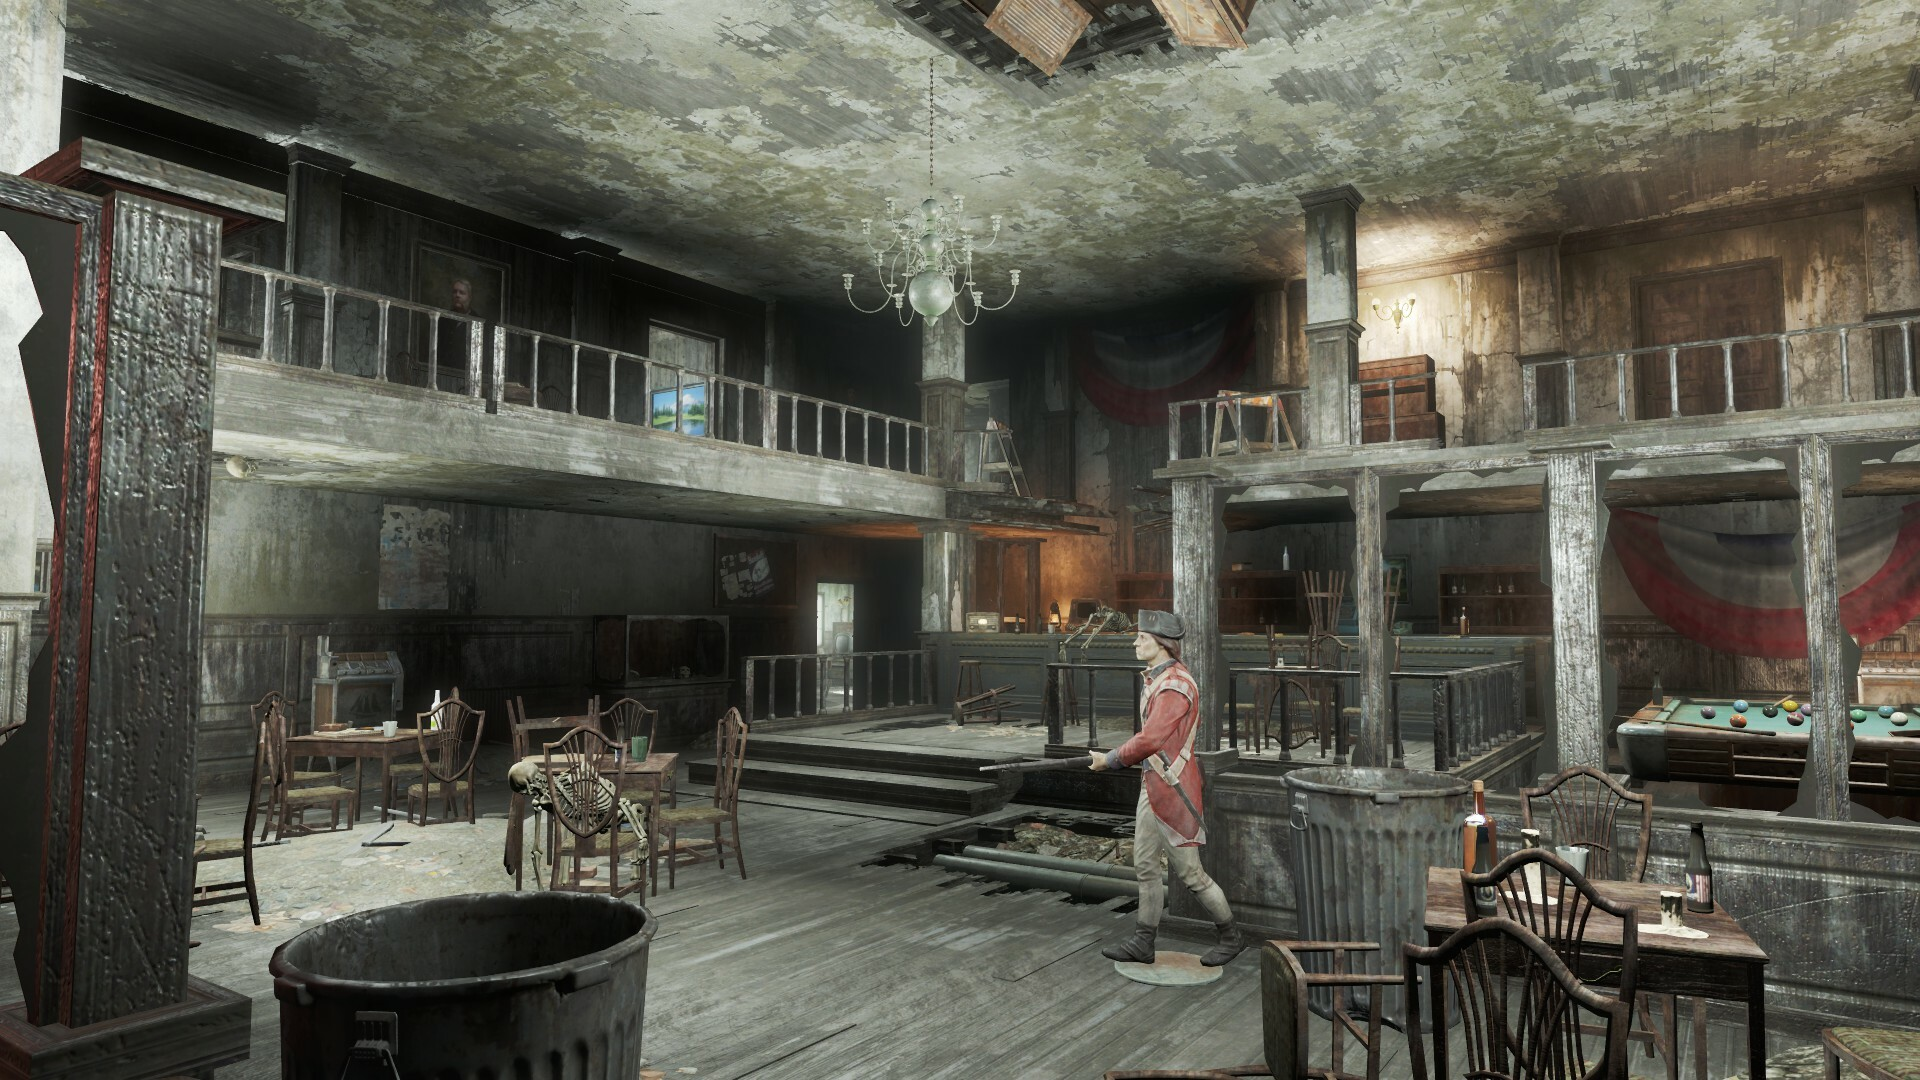 Damage has been added to each aspect of the pub to create a more interesting location that fits with the continuity of Fallout 4.